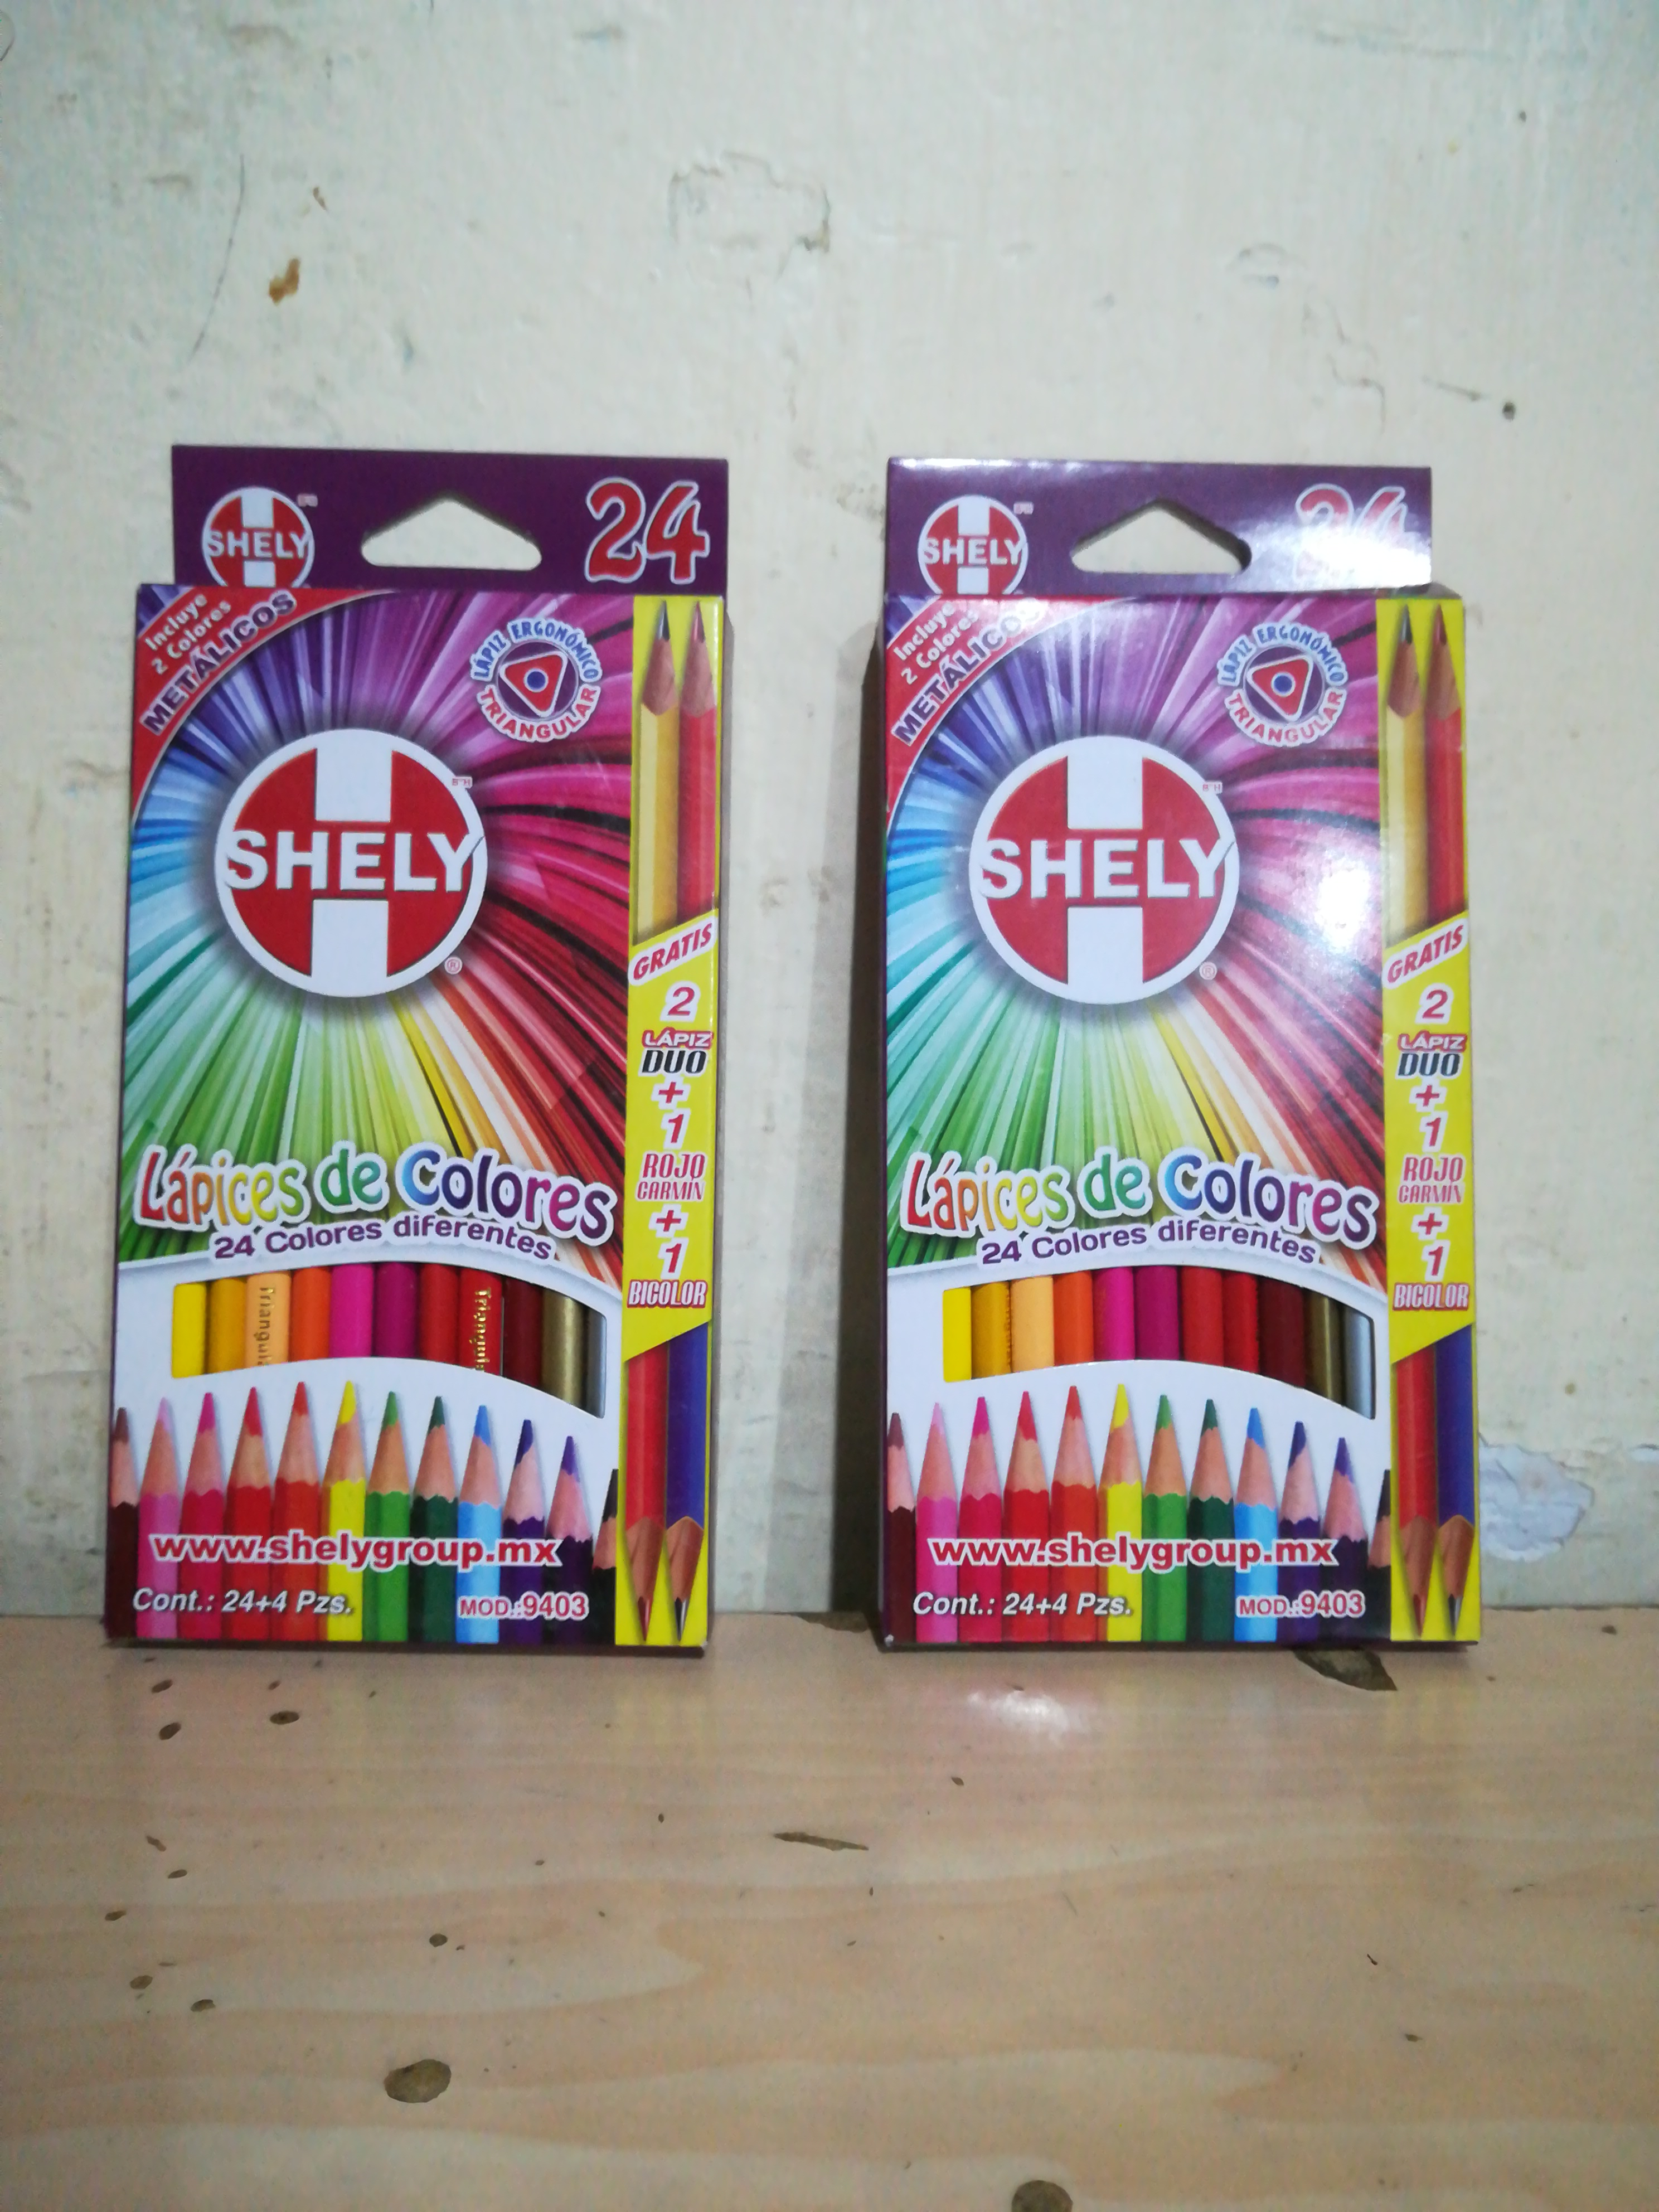 24 COLOR SHELY 40009